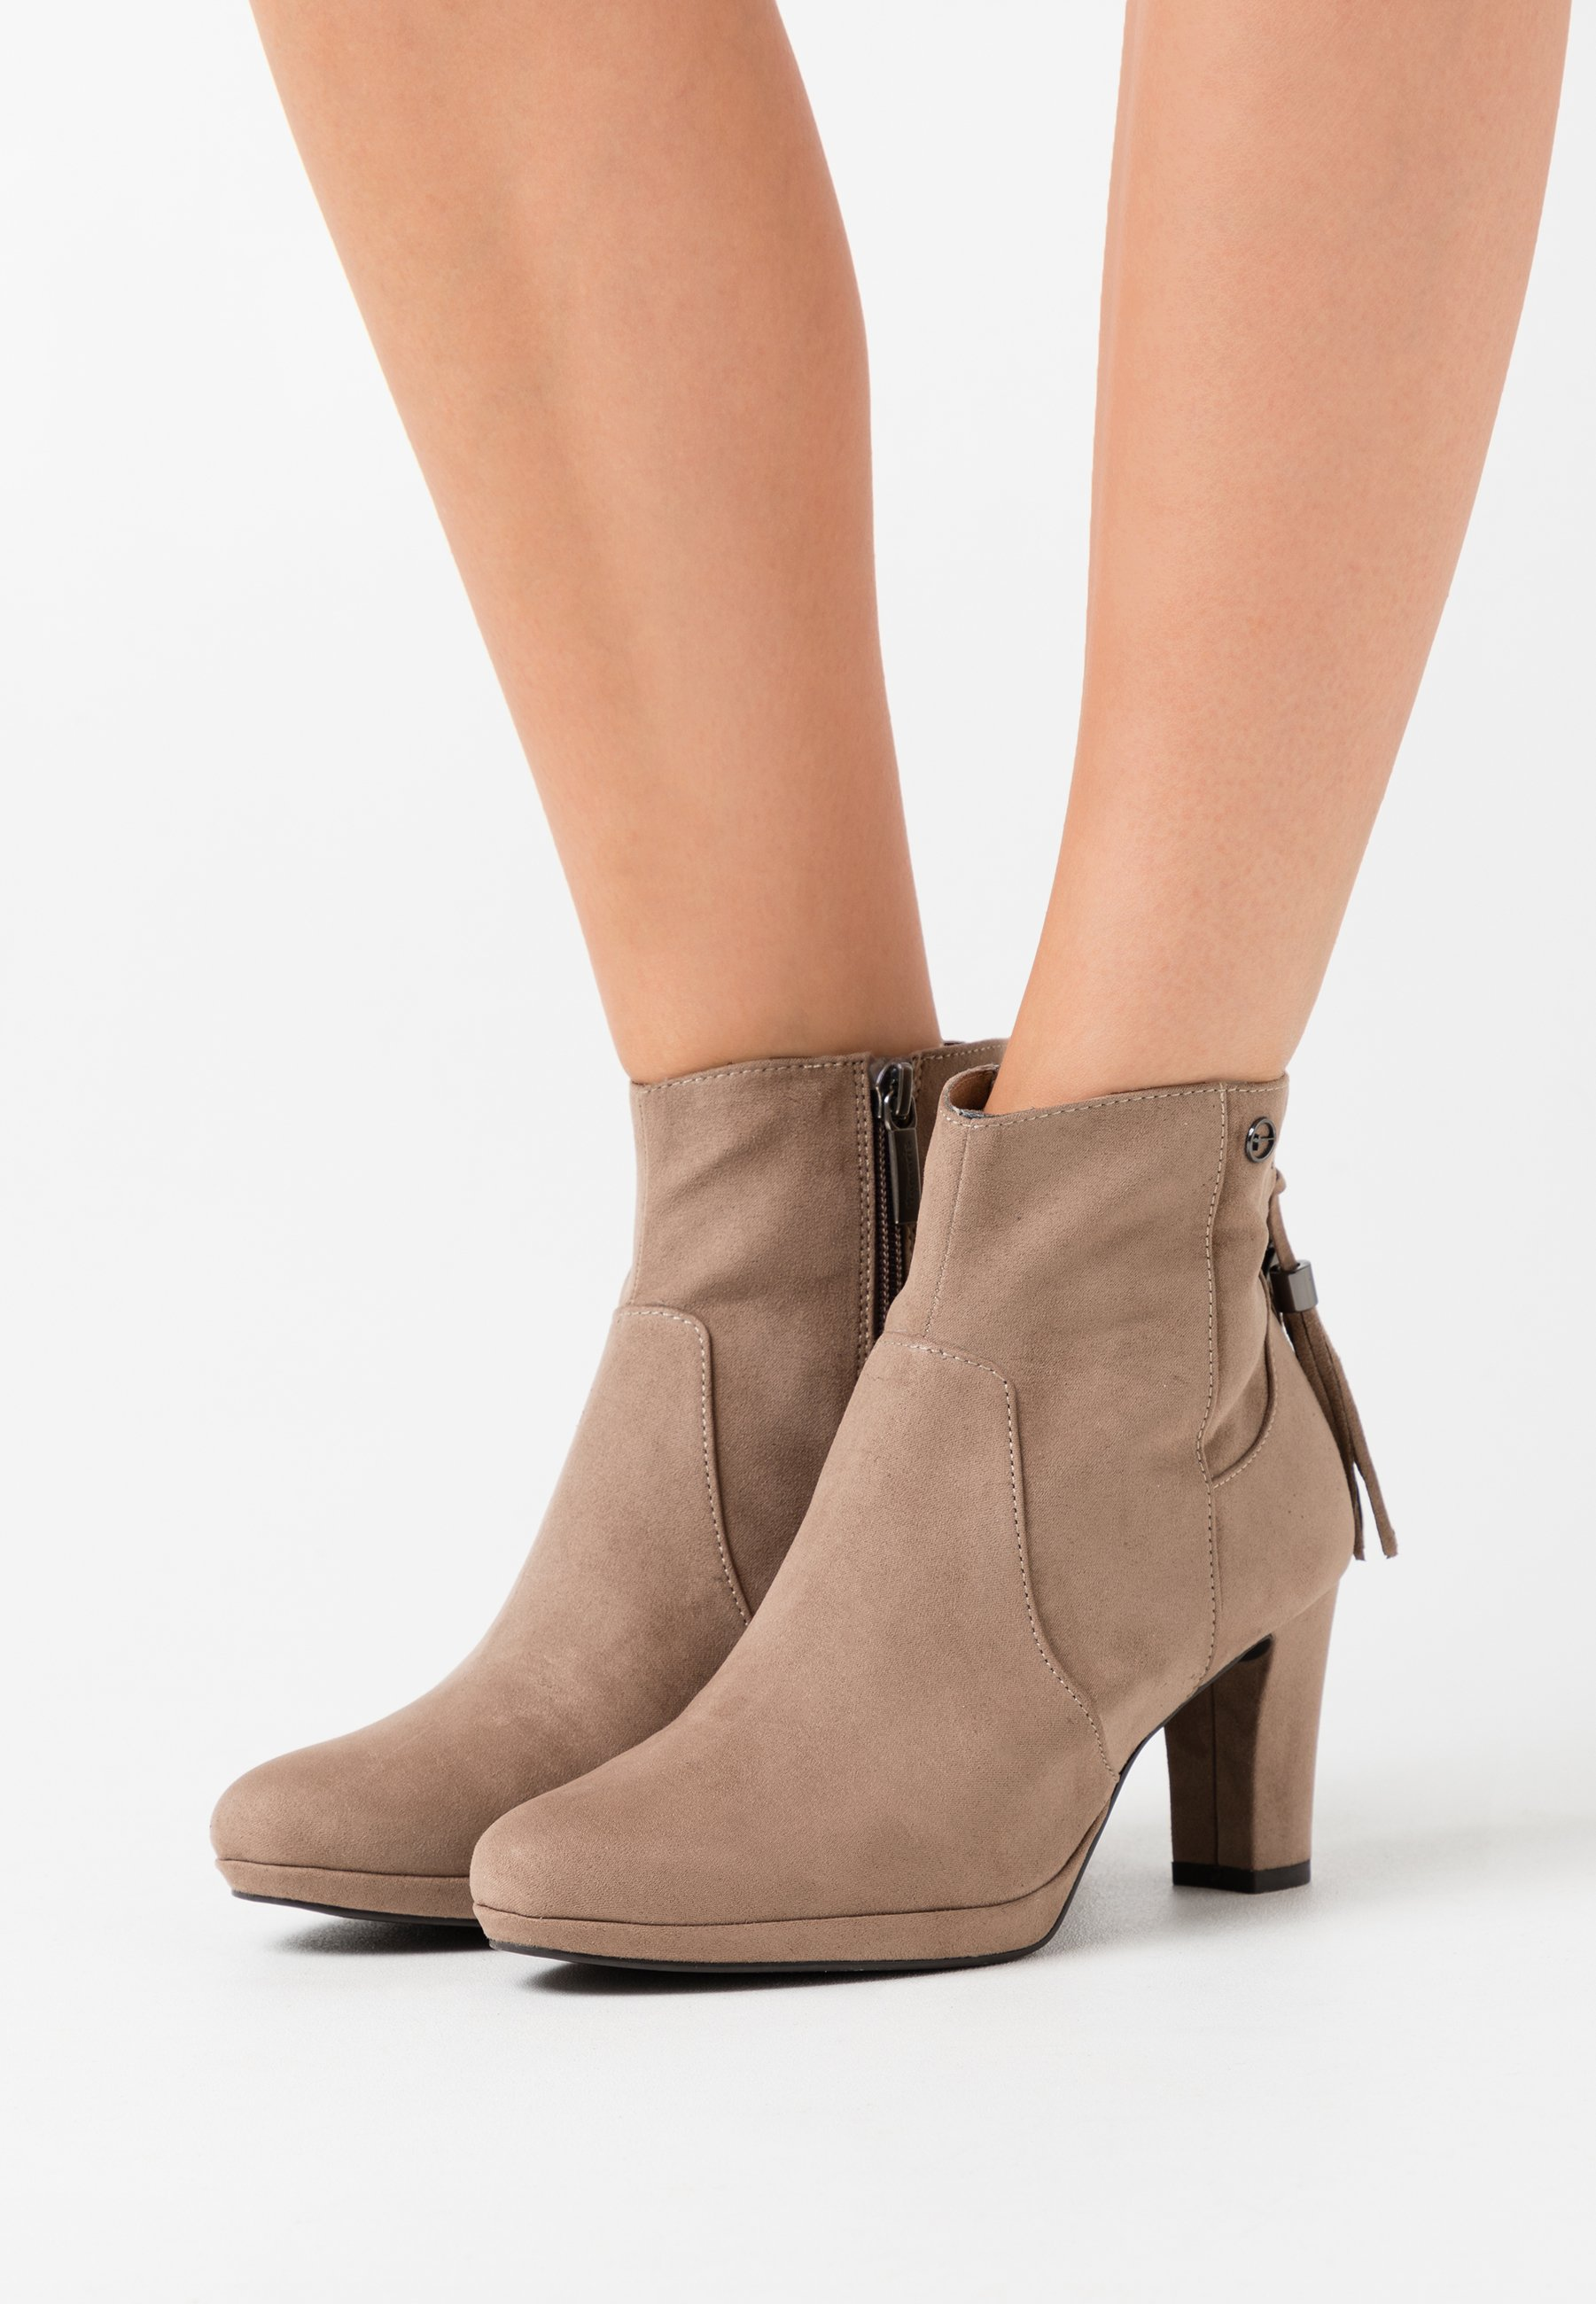 Cheapest Lowest Price Women's Shoes Tamaris Ankle boots pepper f31xAfi7D ox2ZAjCPG